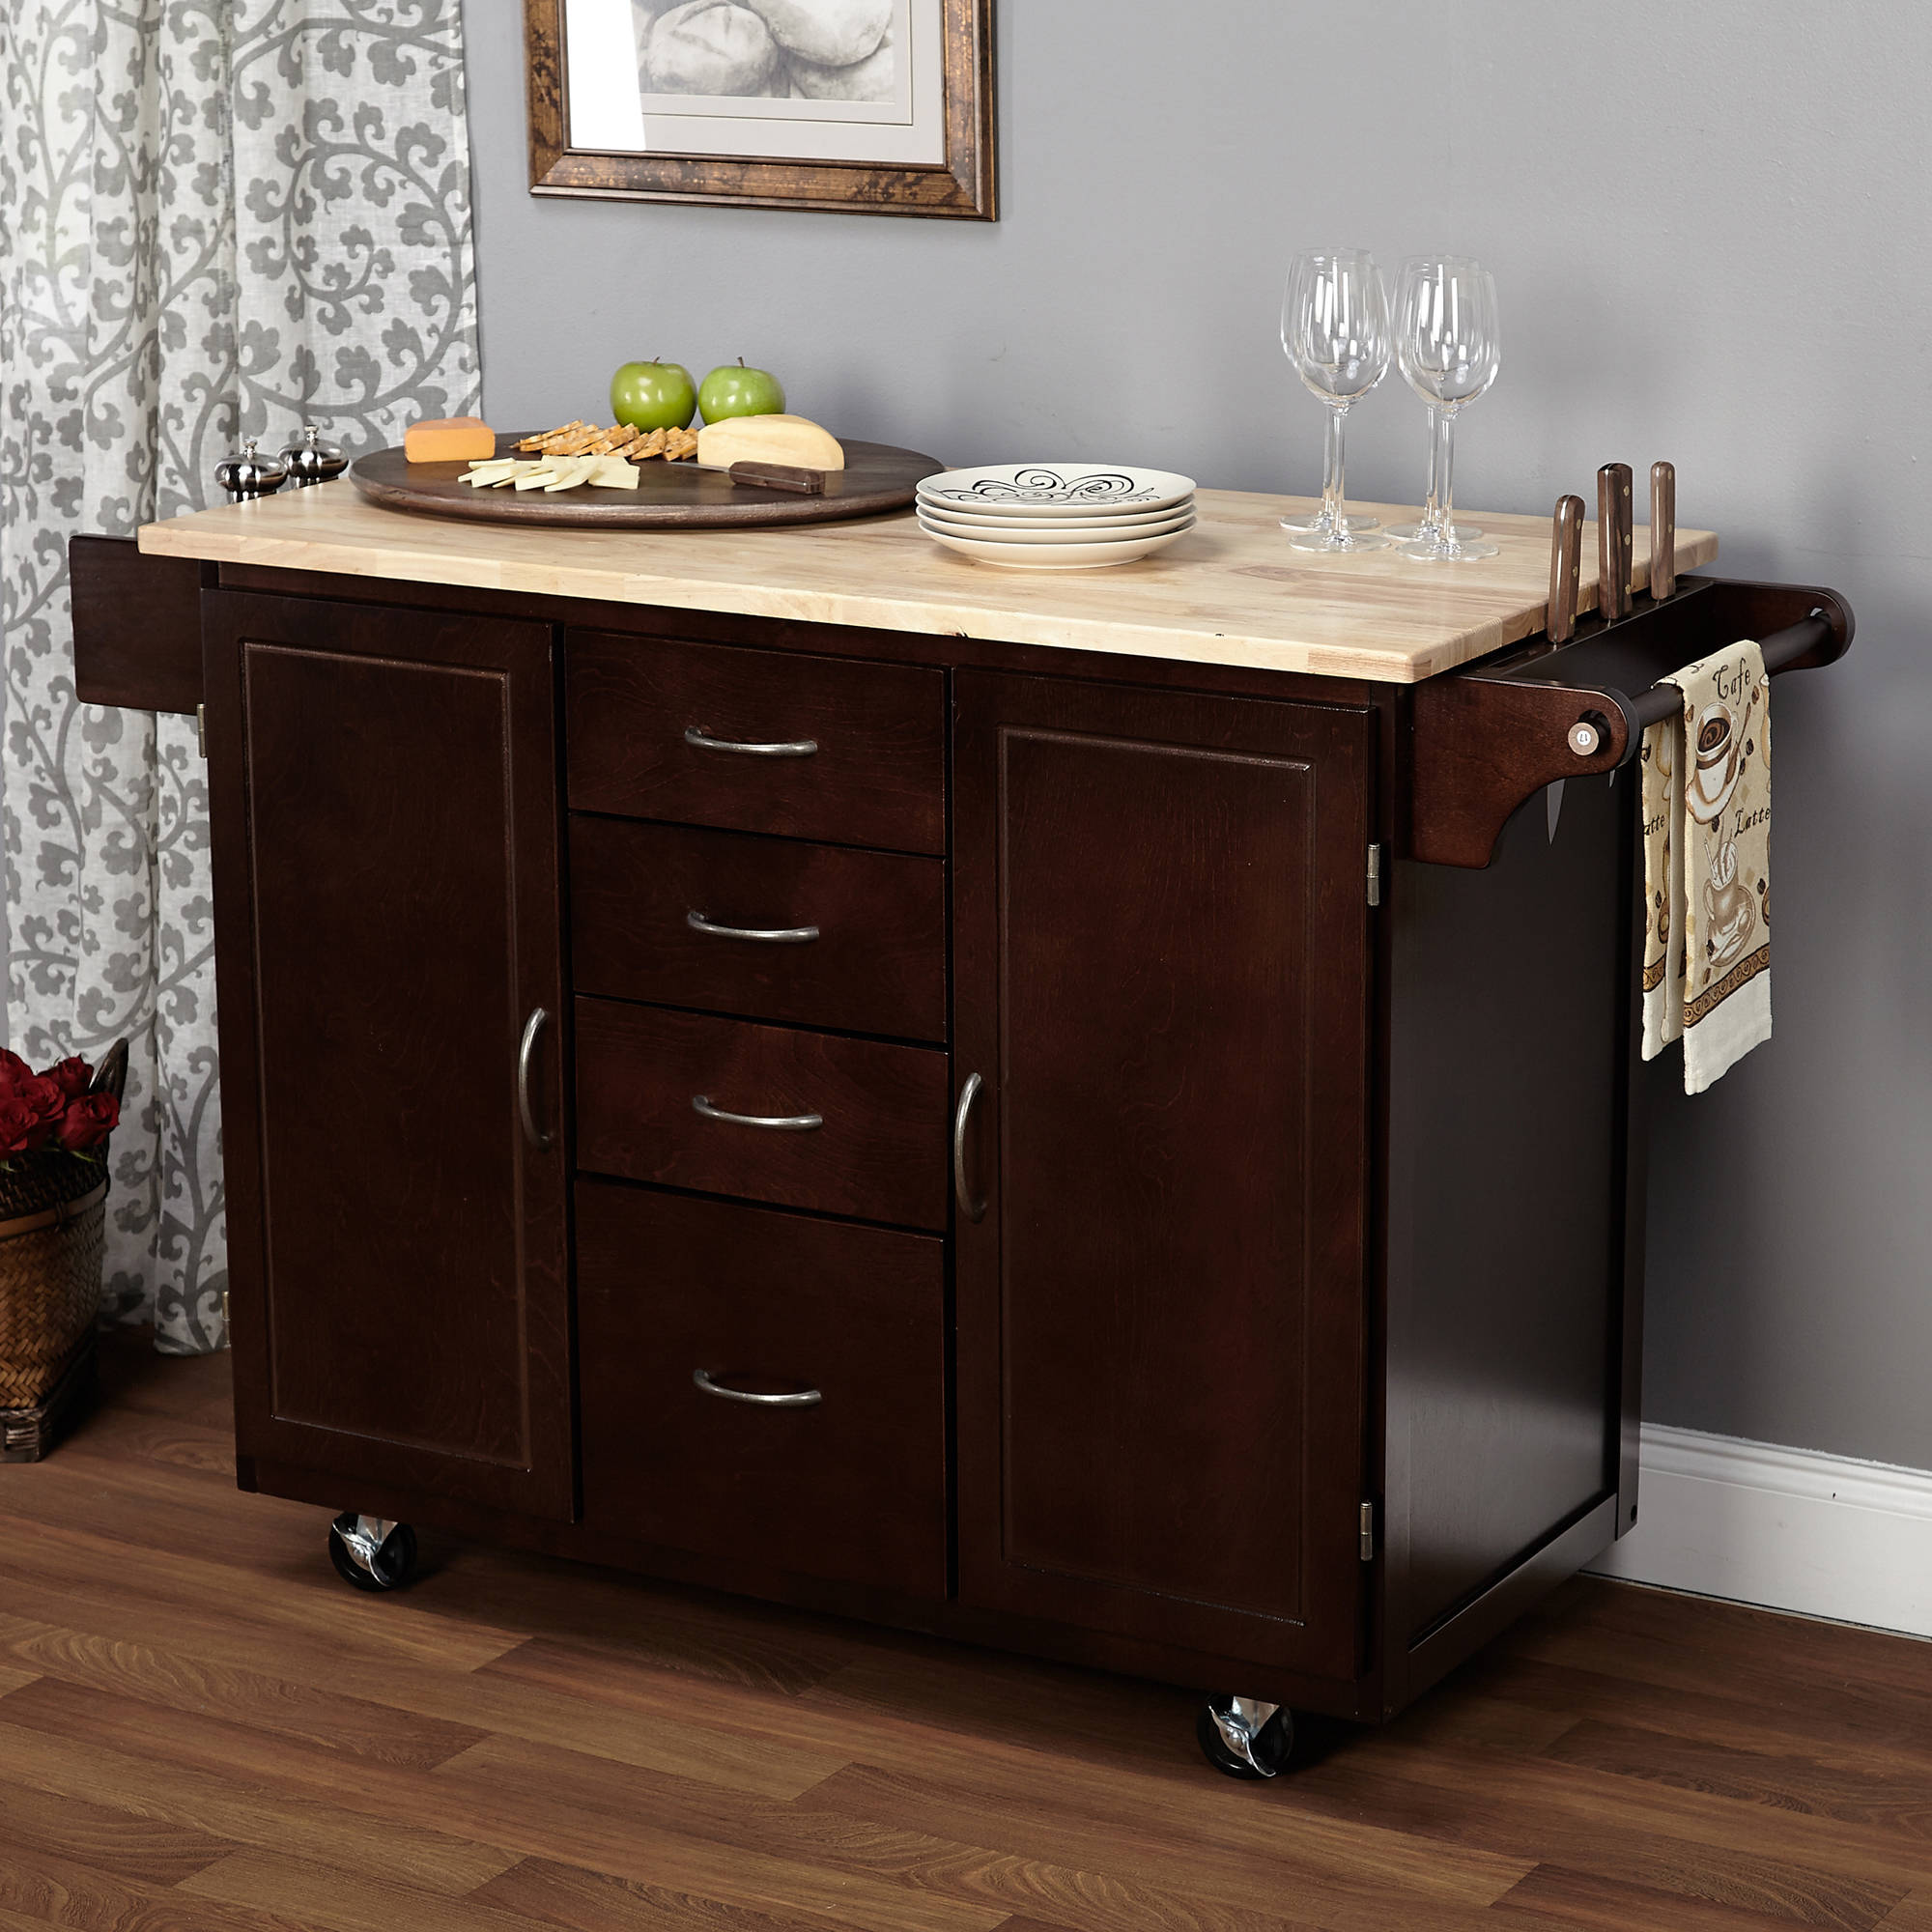 large kitchen cart with rubberwood top, multiple finishes - walmart.com CBEFOVV